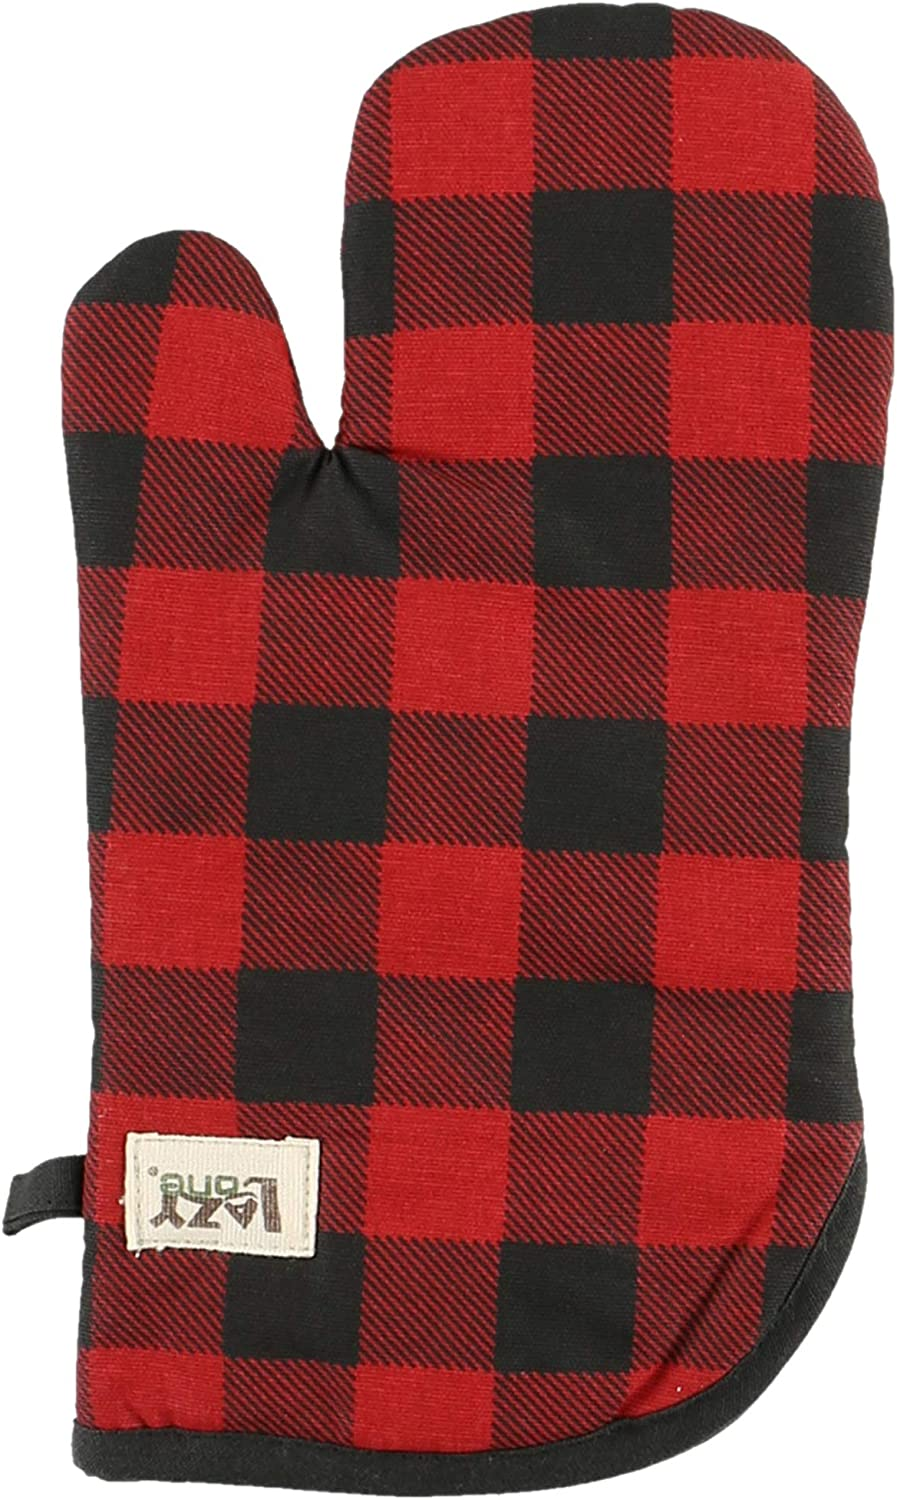 Moose Plaid Durable Canvas Cottons Oven Mits by LazyOne | Cabin, Home and Kitchen Animal Gifts (ONE Size)